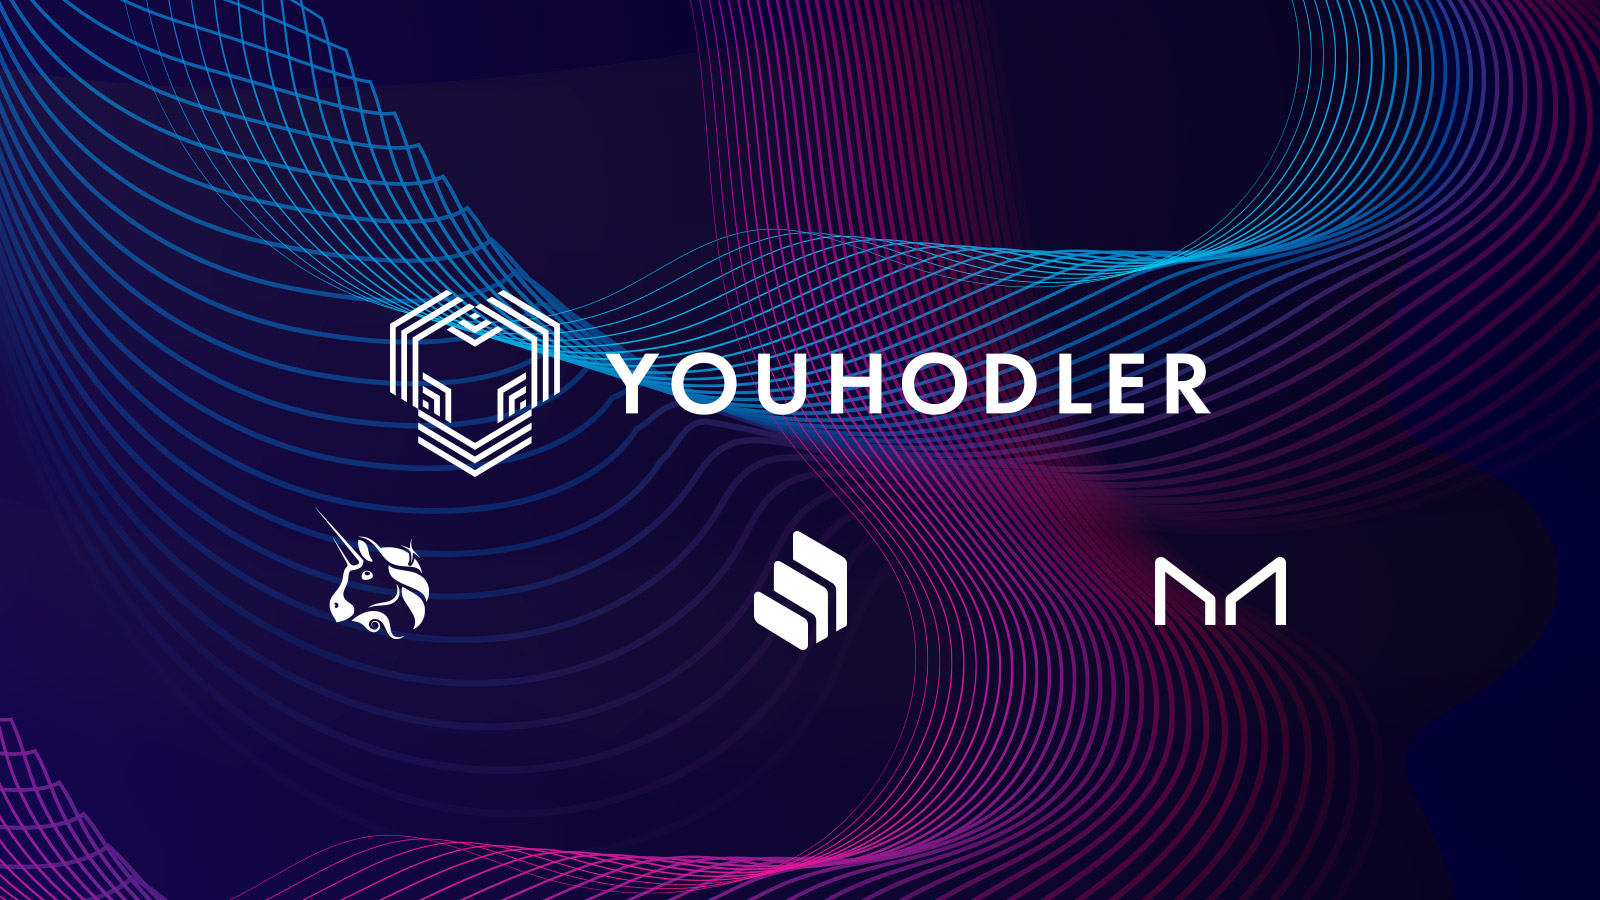 logos for Uniswap, Compound and Maker on an image with YouHodler logo